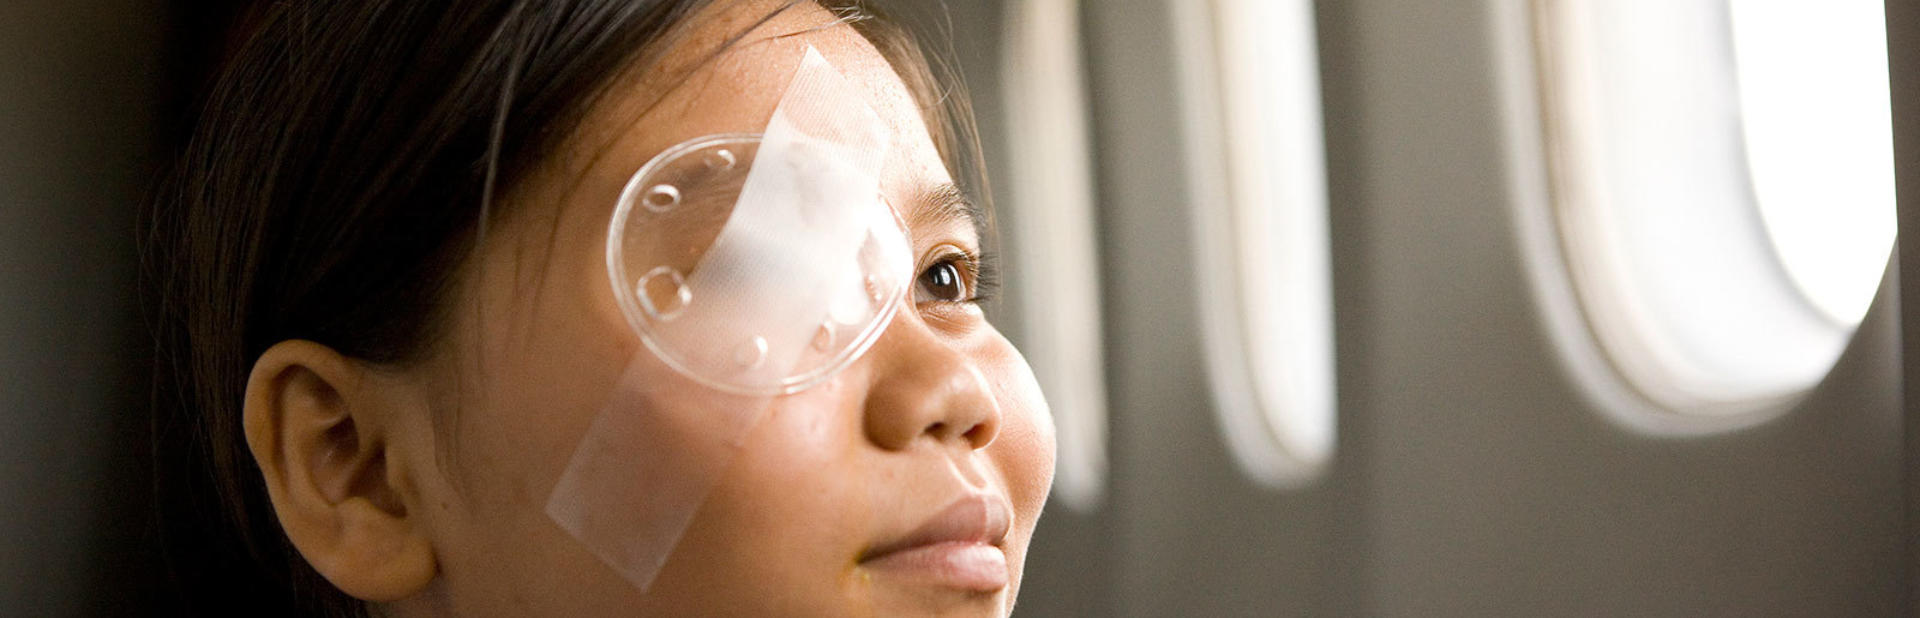 A young girls stares out of the windows of the Flying Eye Hospital, an eye patch over her right eye